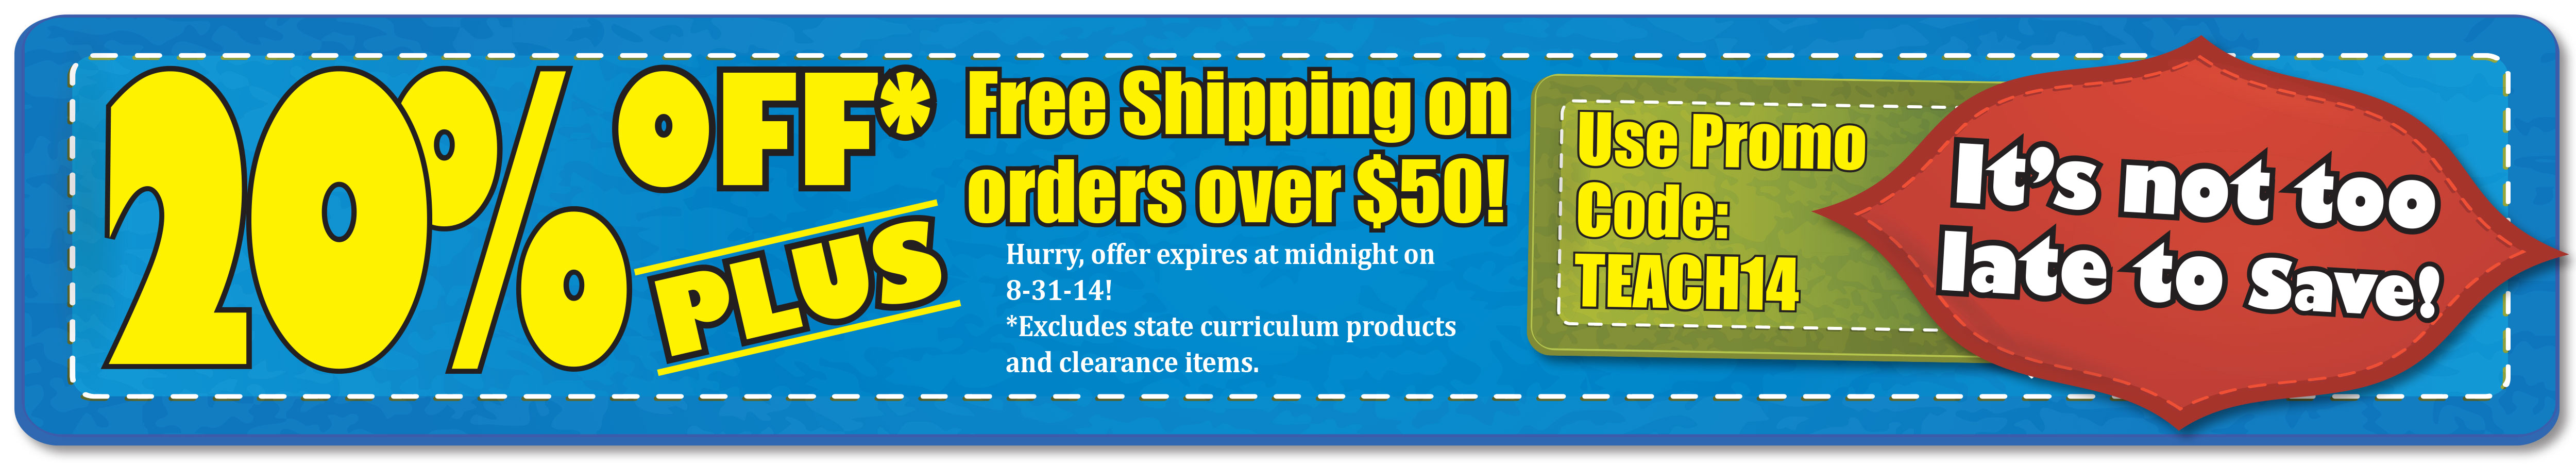 GET 20% OFF AND FREE SHIPPING ON ORDERS OVER $50! START SHOPPING!